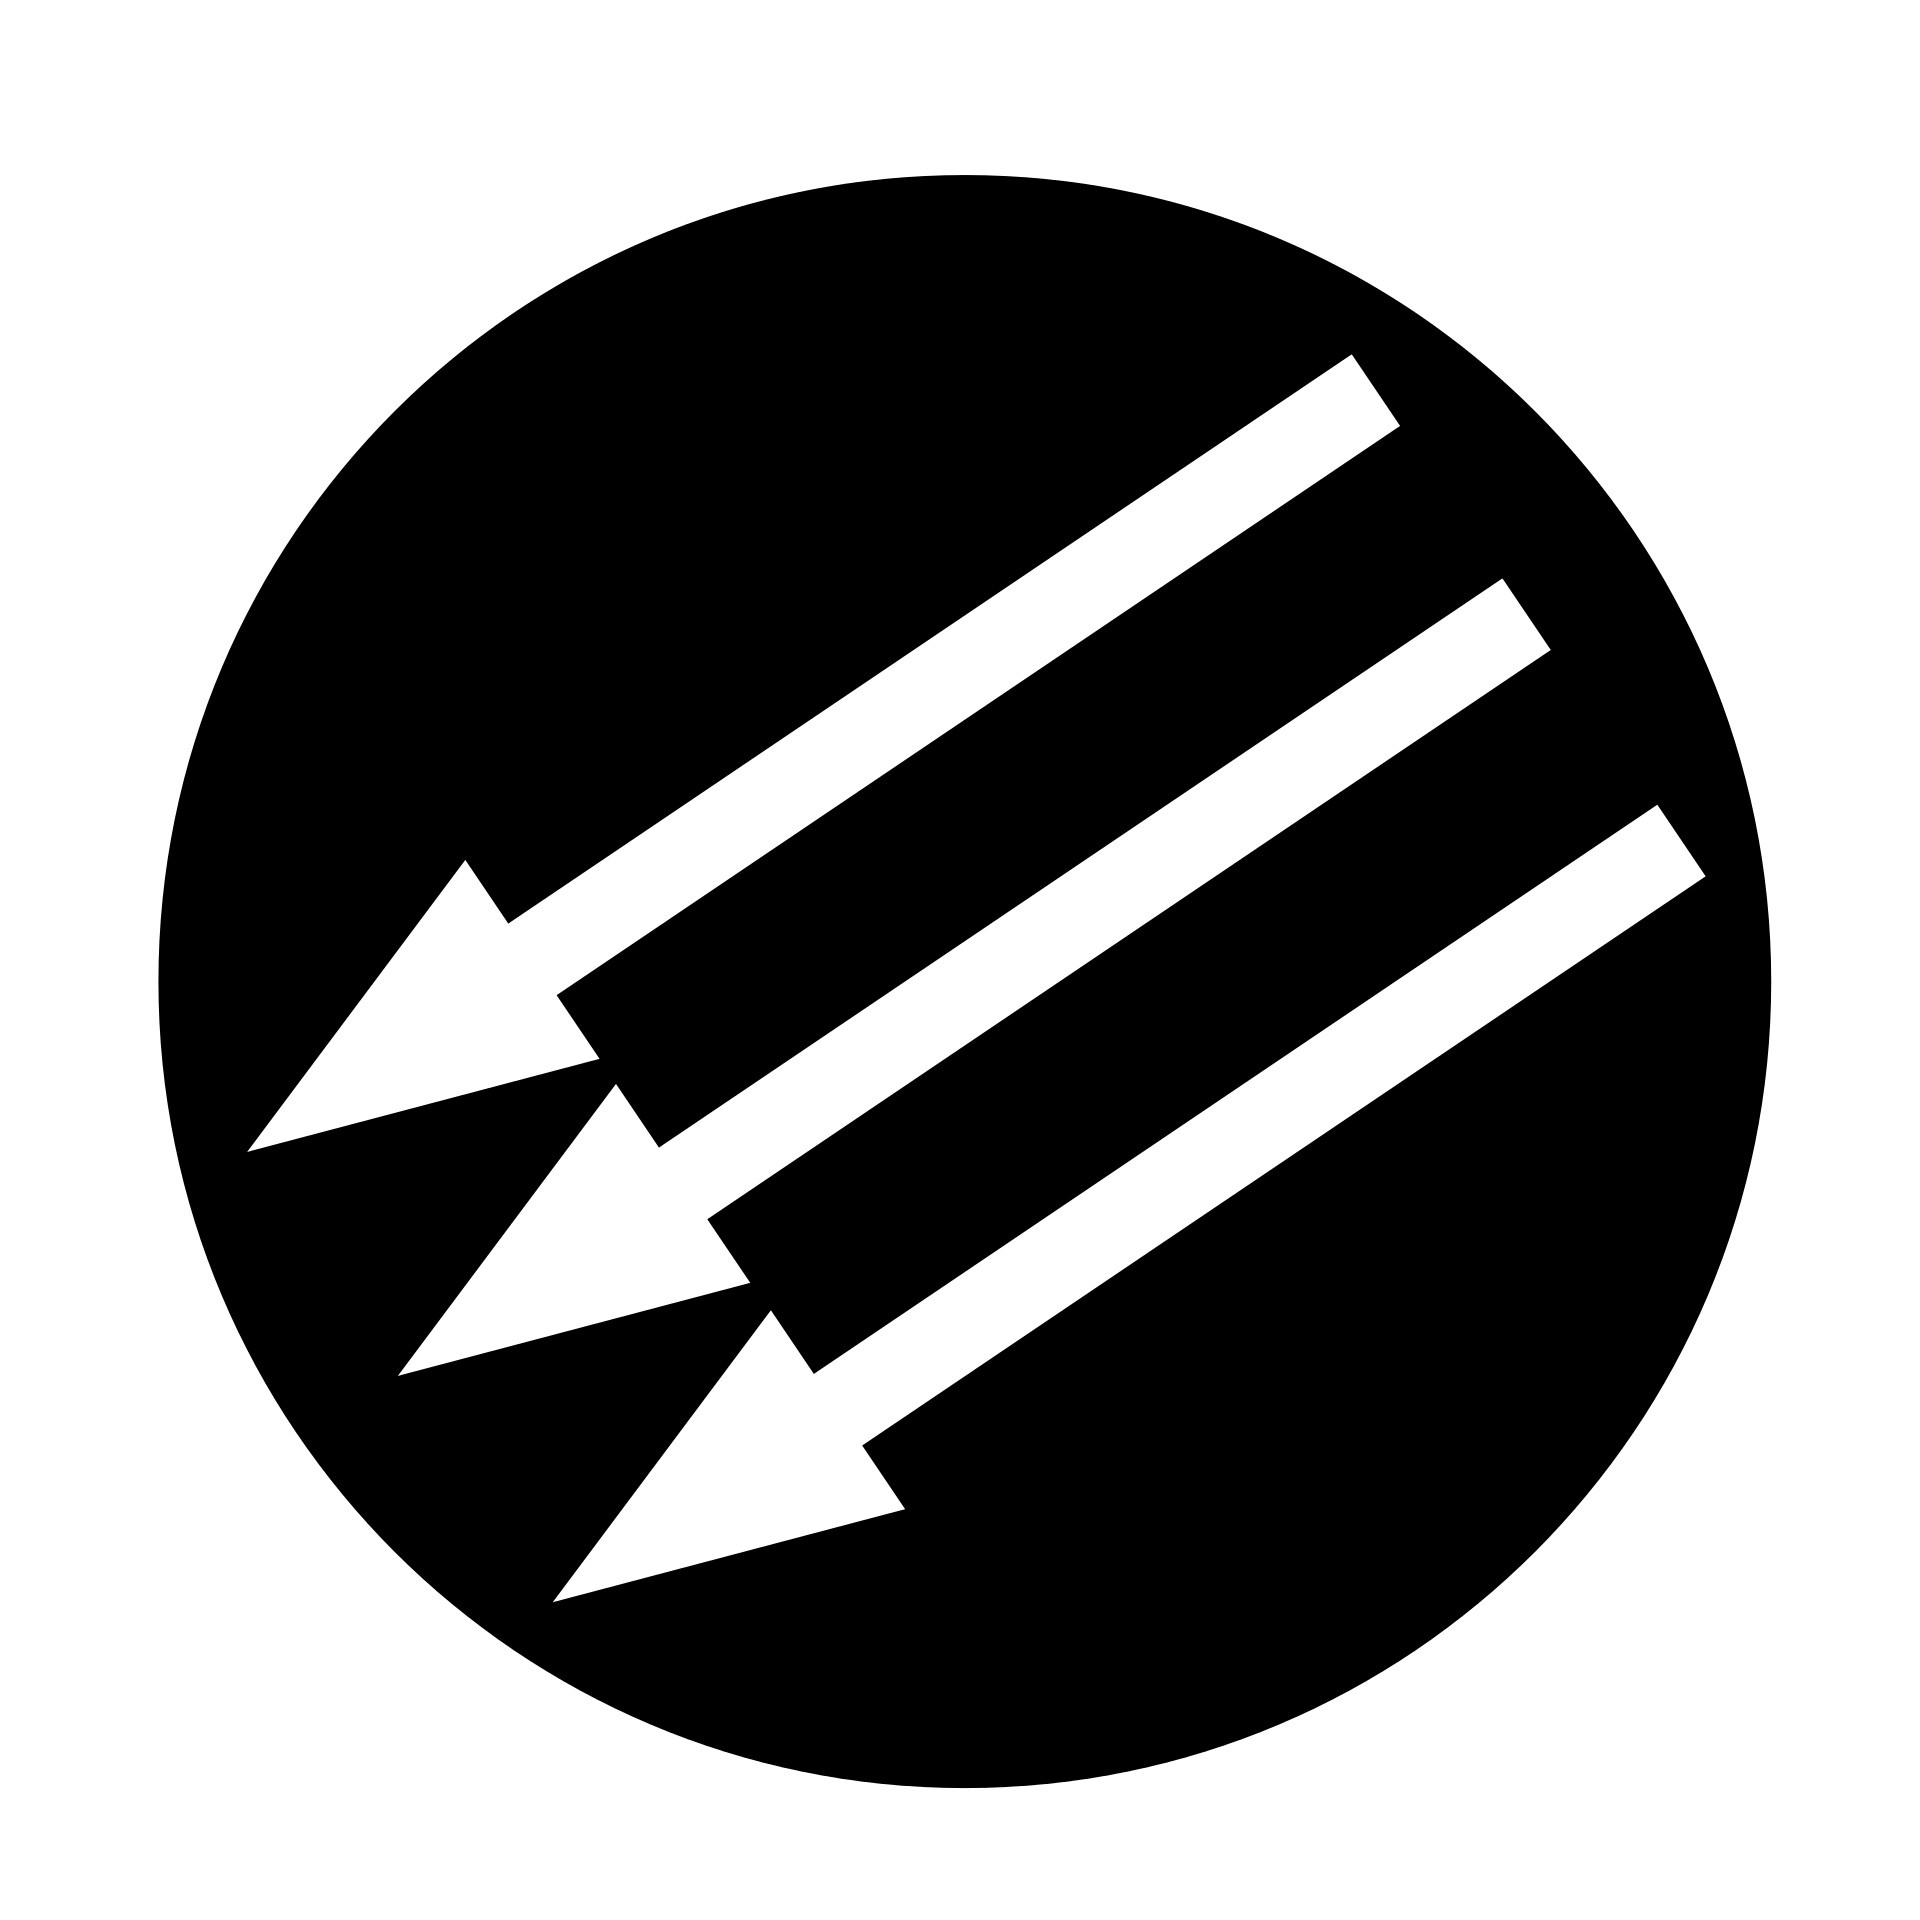 Symbol of the Iron Front, also known as the Antifascist.